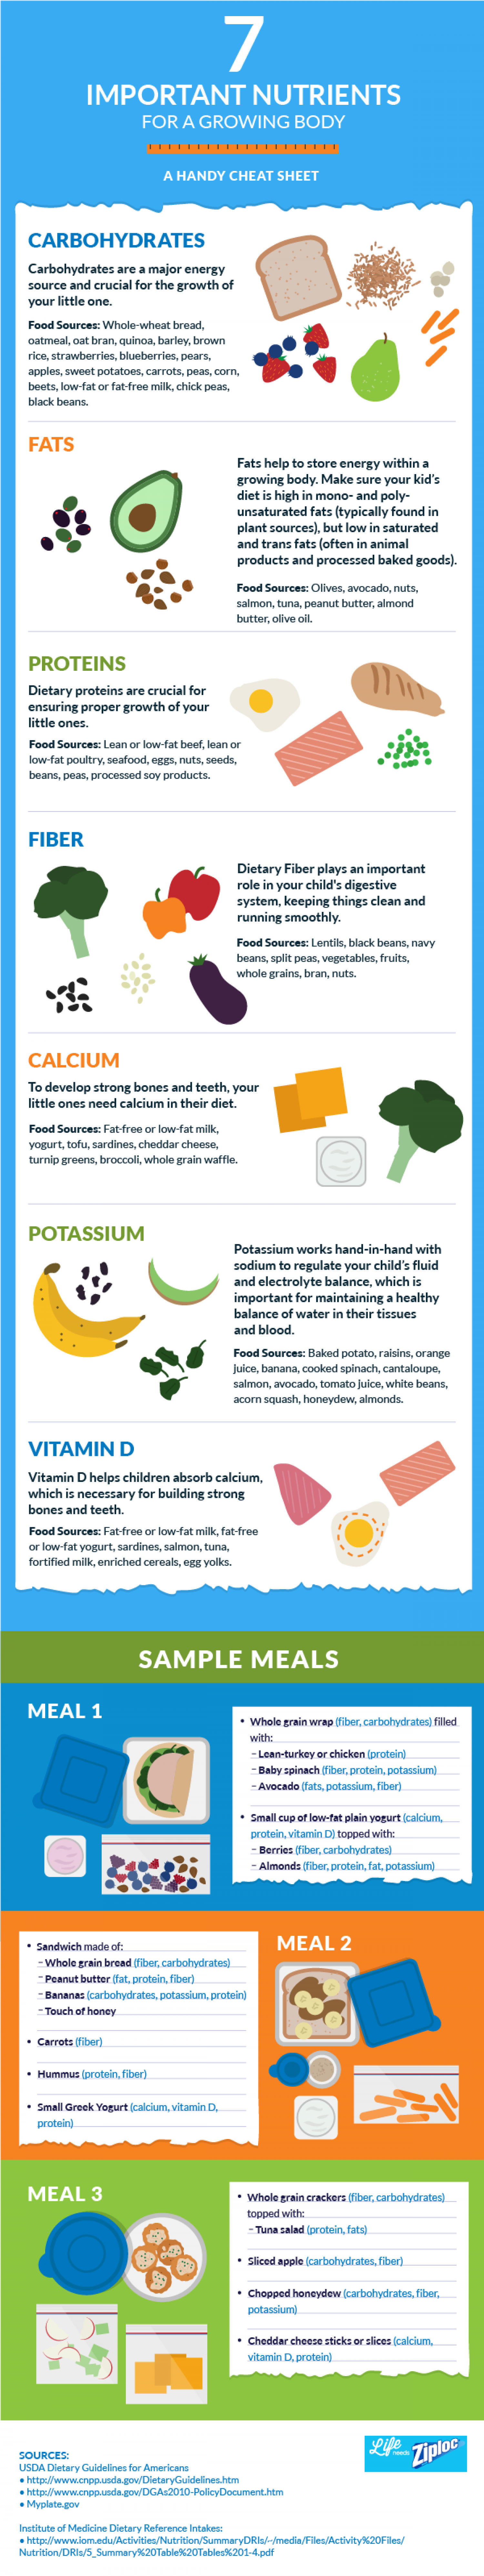 Lunchtime Nutrition at Every Age Infographic